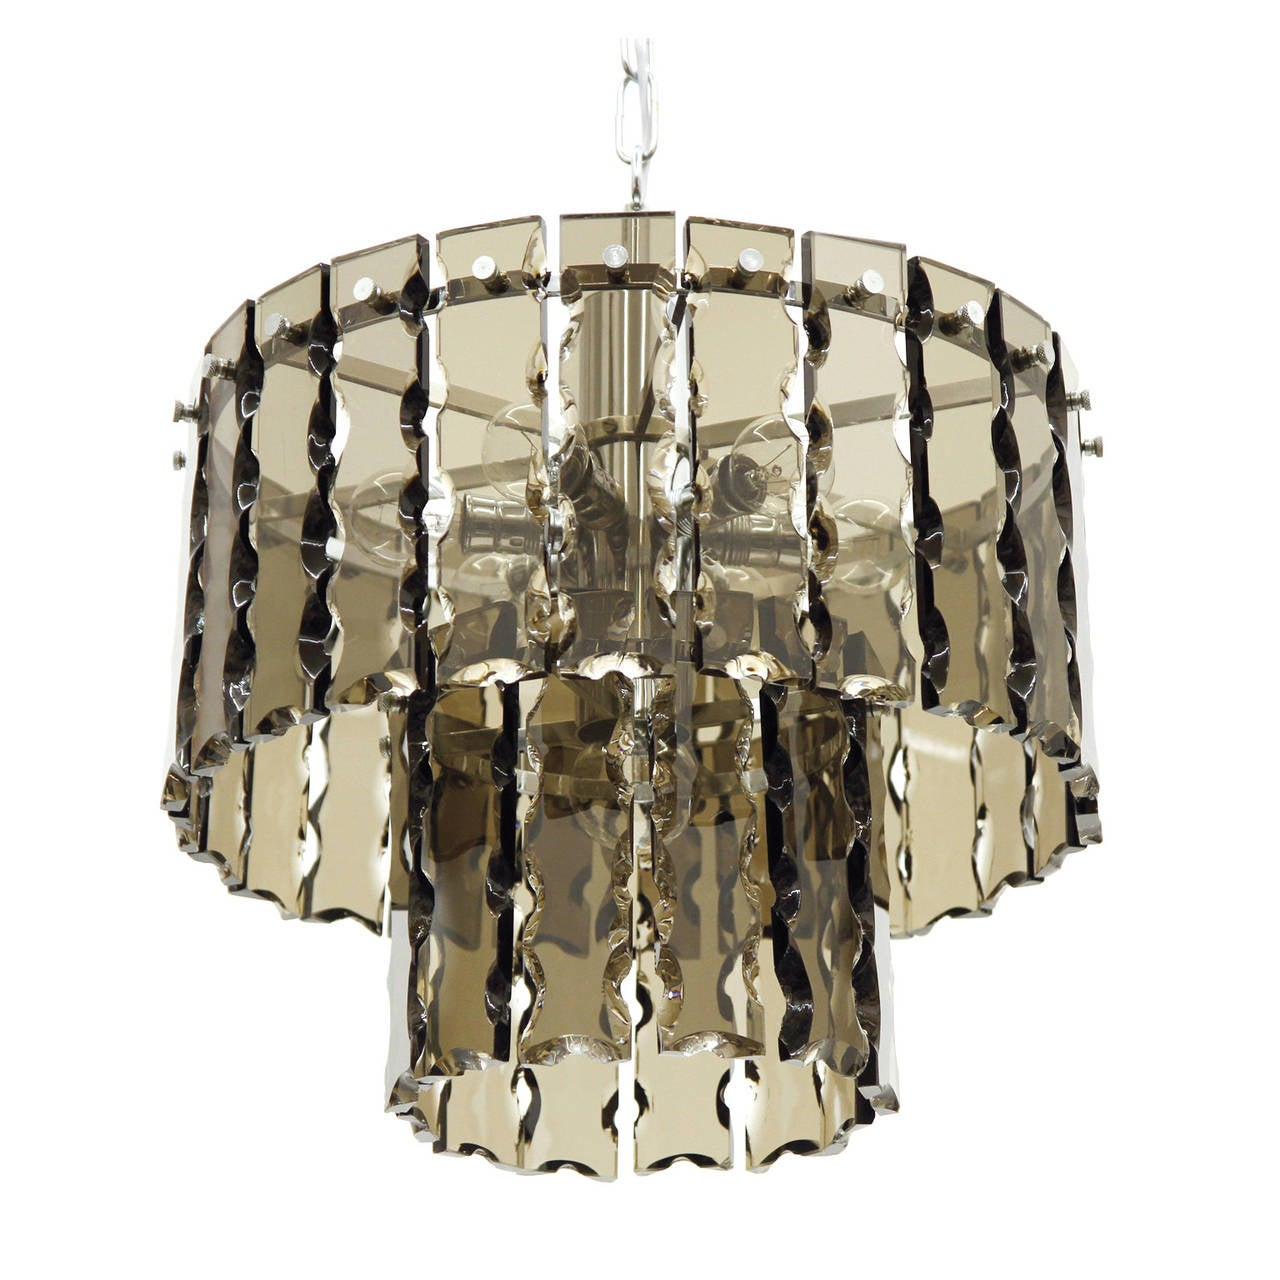 Fontana Arte Style Two-Tier Smoke Glass Chandelier 1